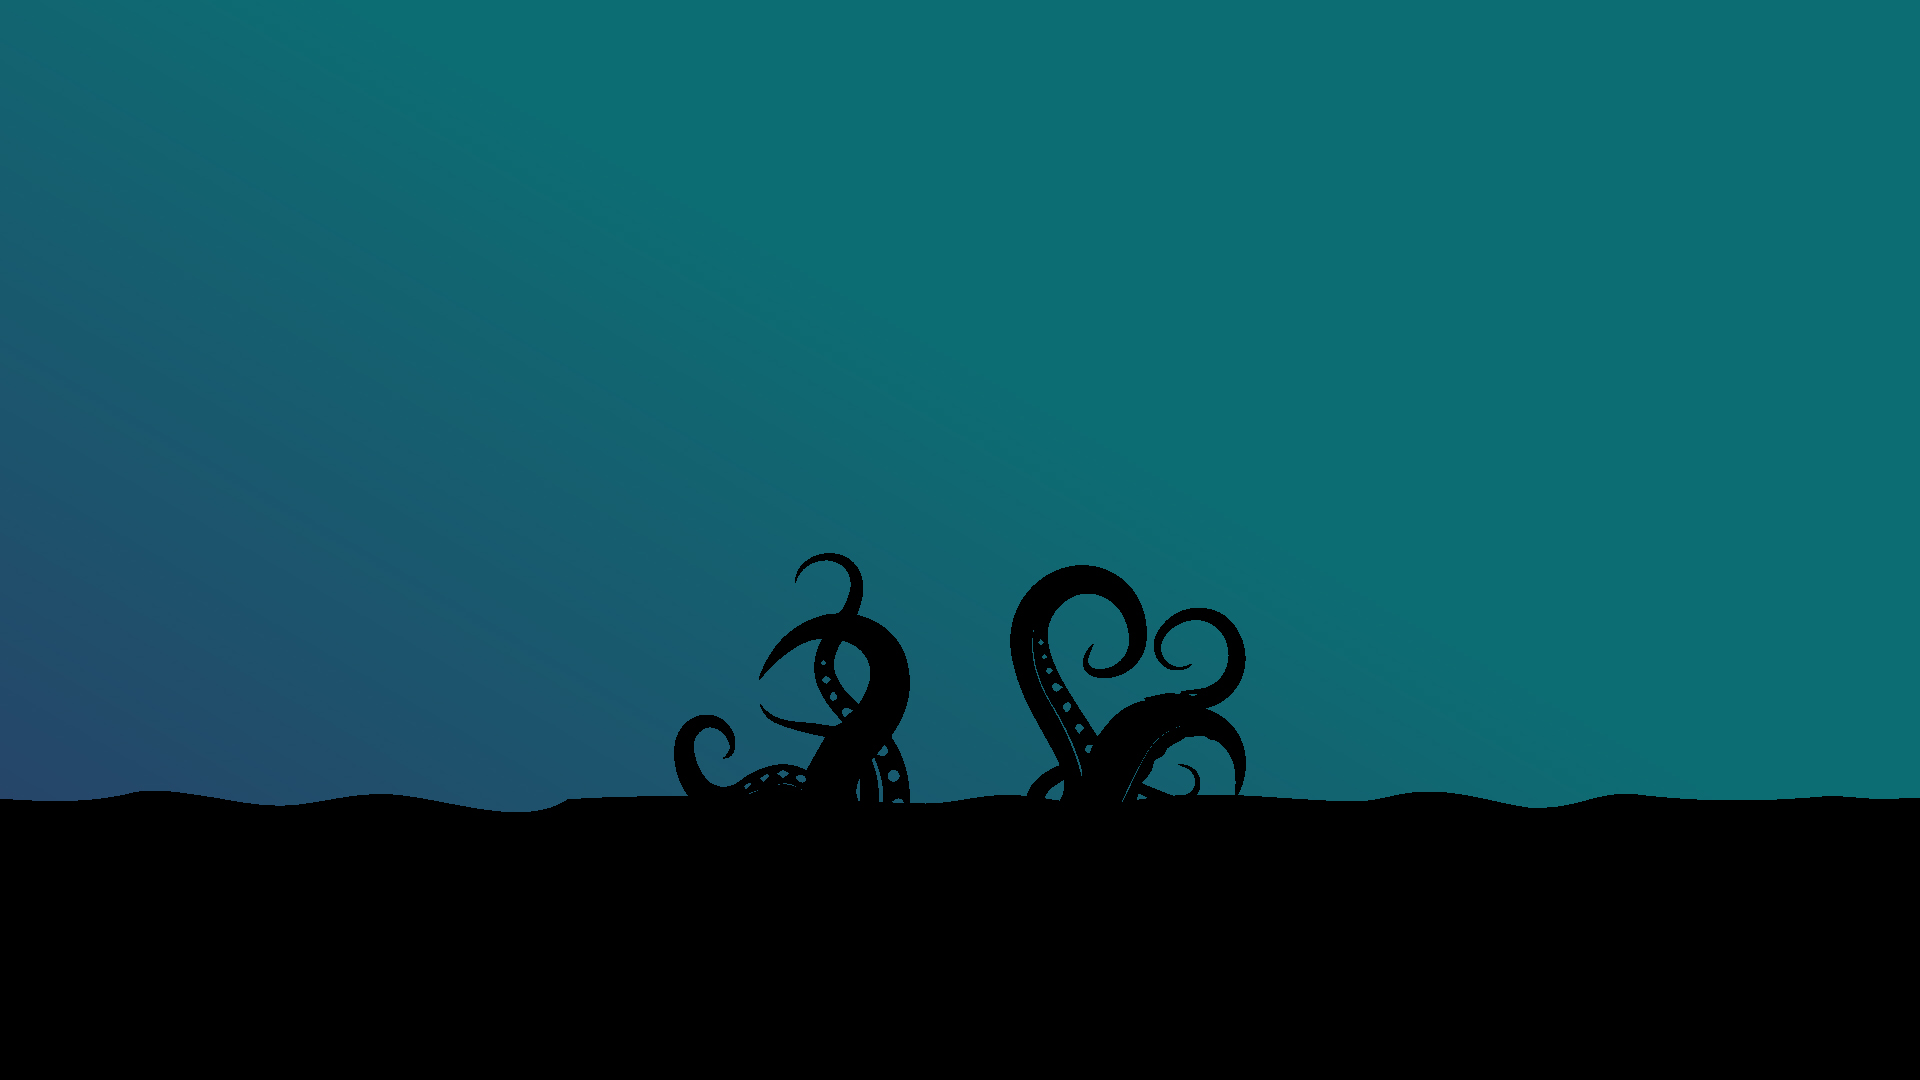 MINIMALIST DESKTOP WALLPAPER - OCTOPUS | HeroScreen - Cool ...